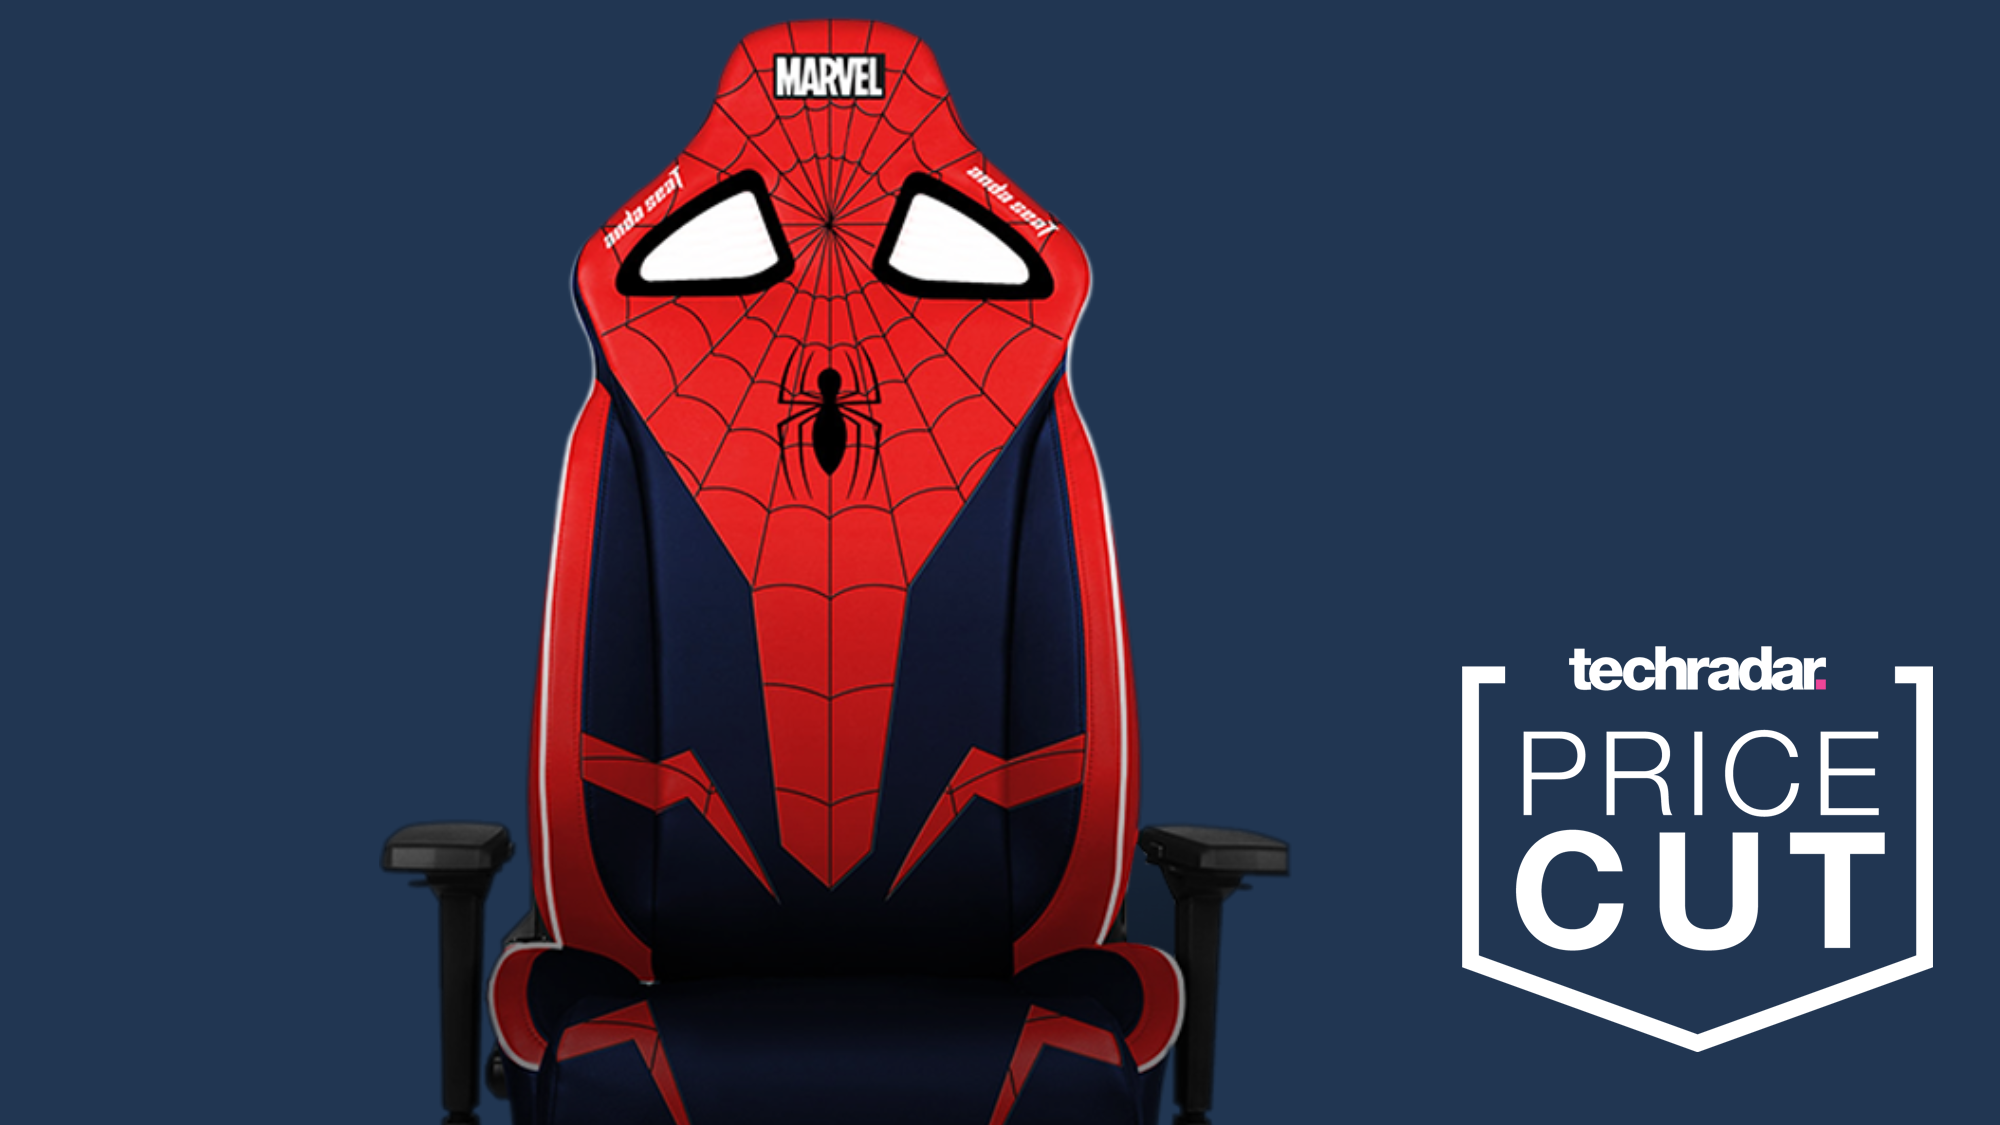 i-finally-got-this-marvelous-spider-man-gaming-chair-thanks-to-prime-day